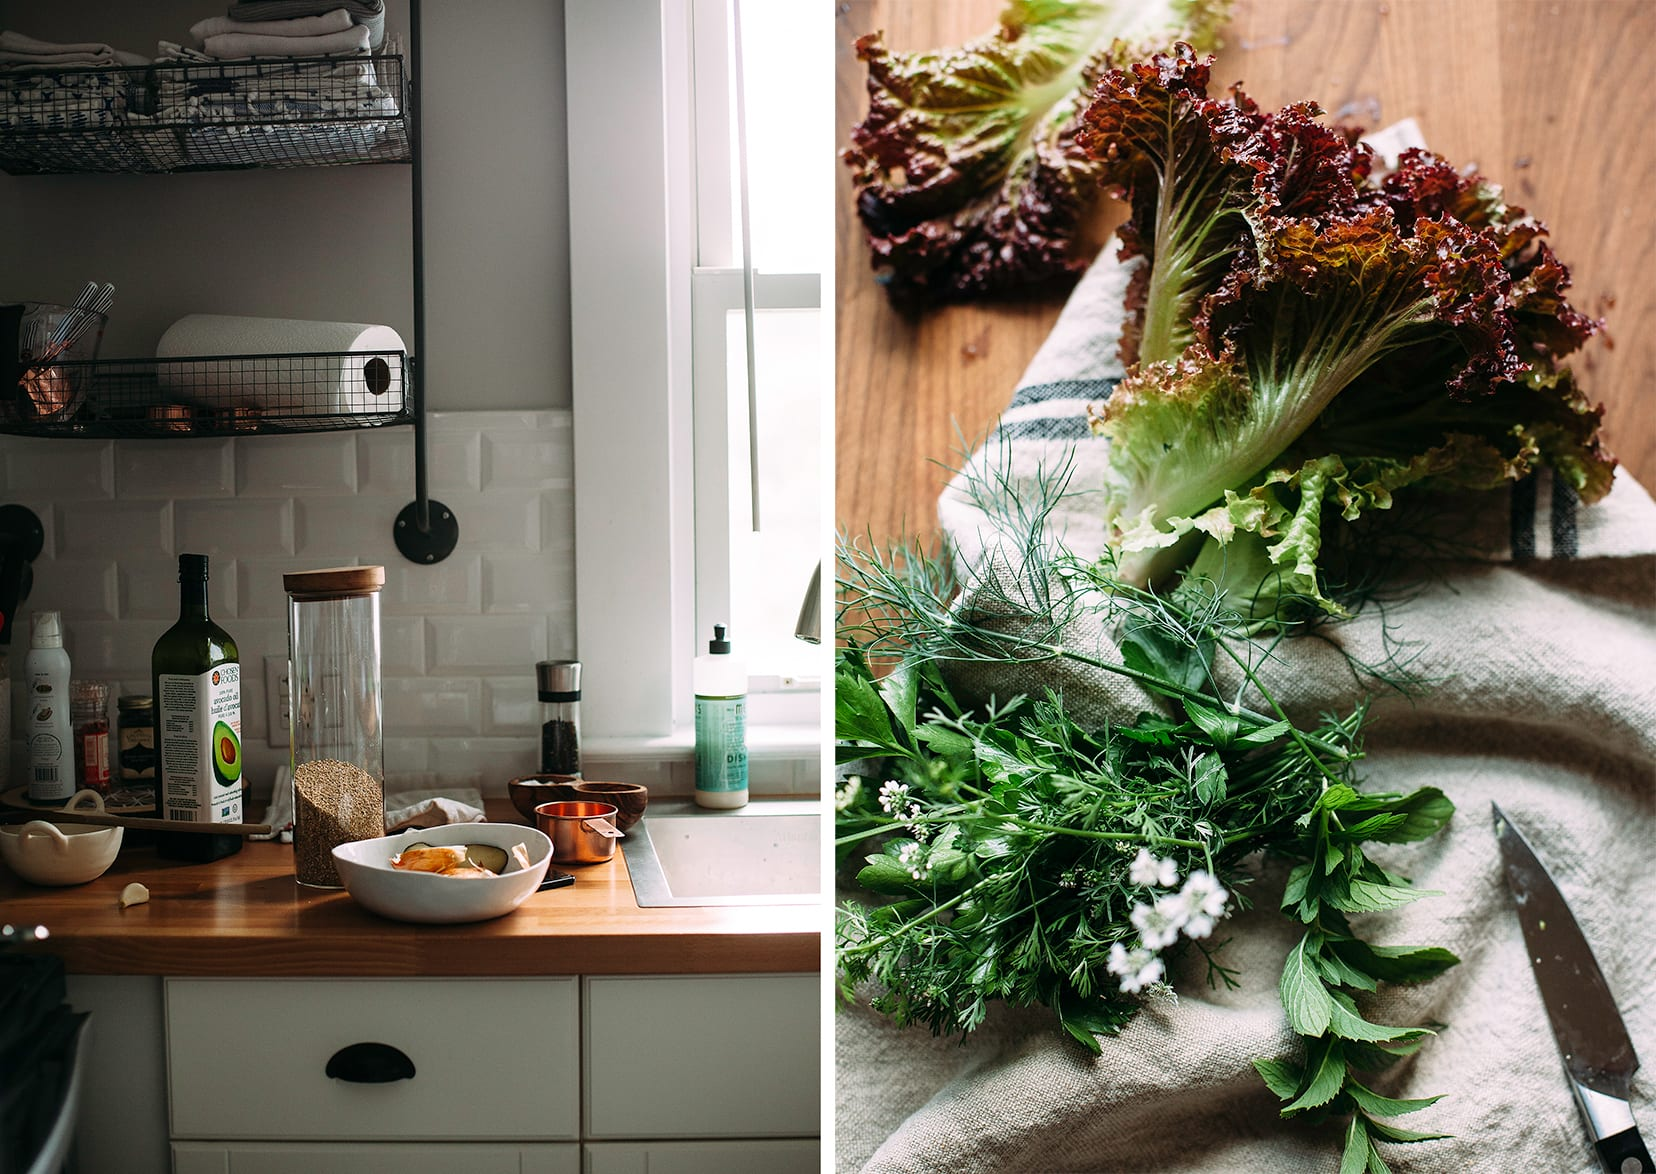 Two images show a kitchen scene and some lettuces and herbs on a wooden cutting board.